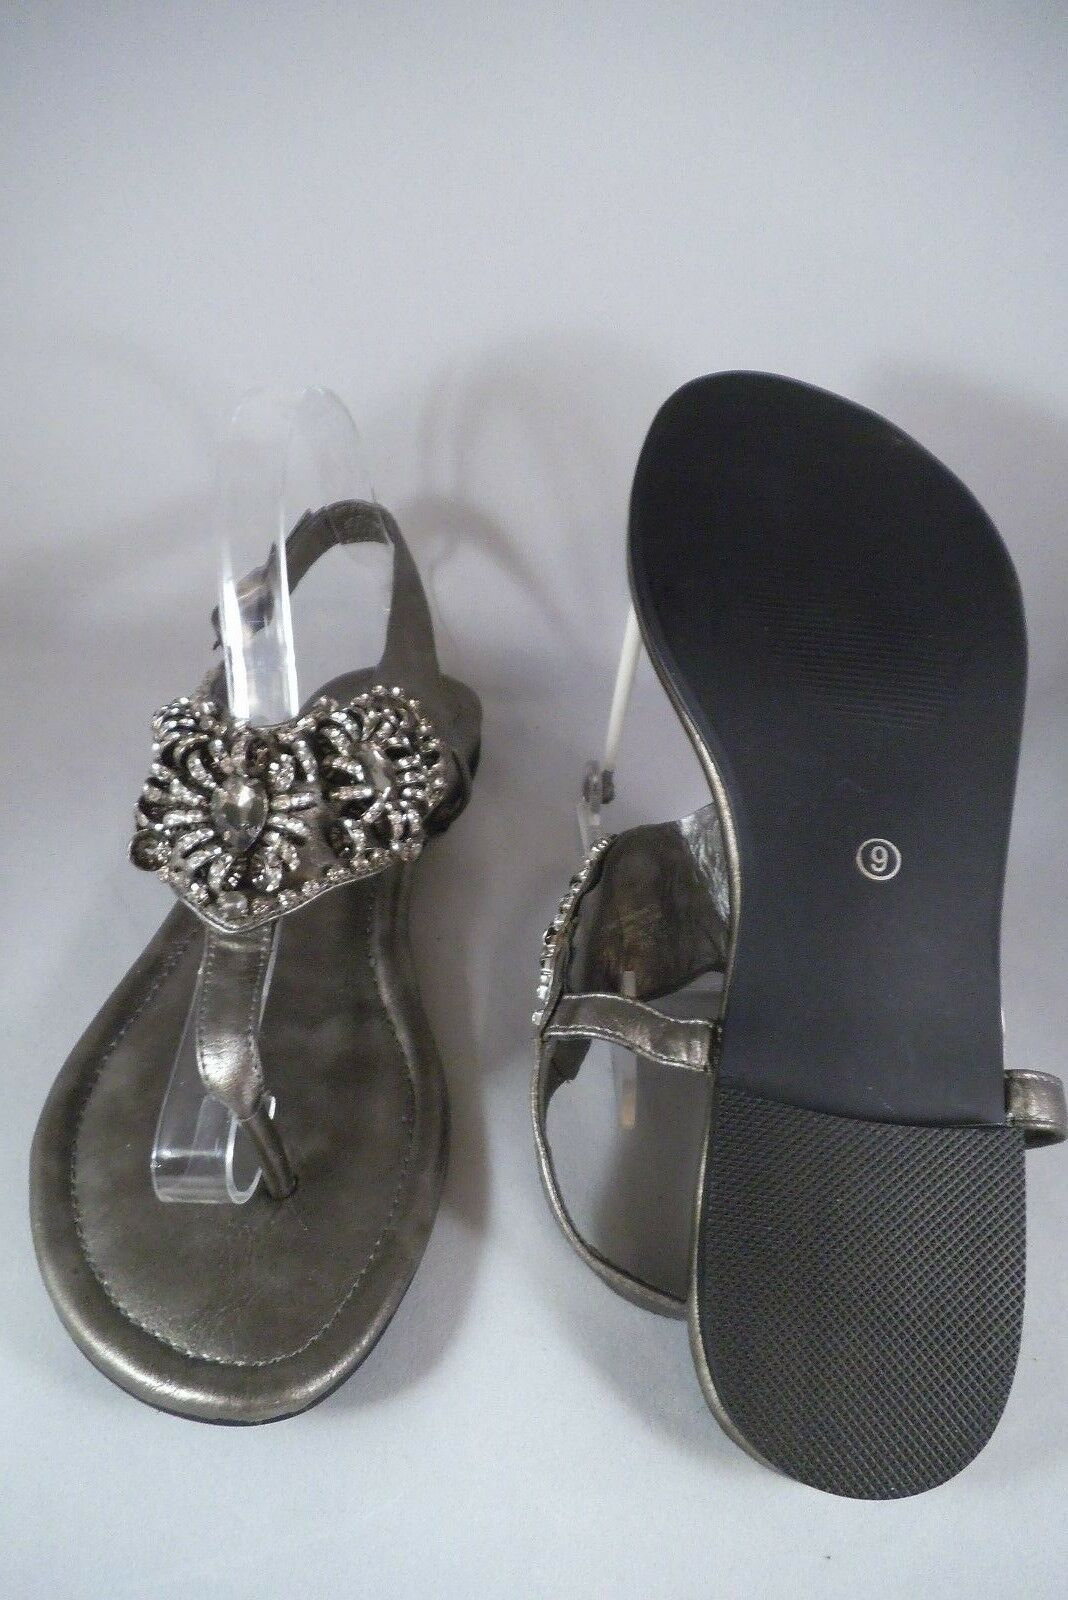 NEW TWO LIPS THONG SANDALS PEWTER CRYSTAL BEADING BUCKLE TRIM SIZE 9 ADJ BUCKLE BEADING STRAPS 517cf5